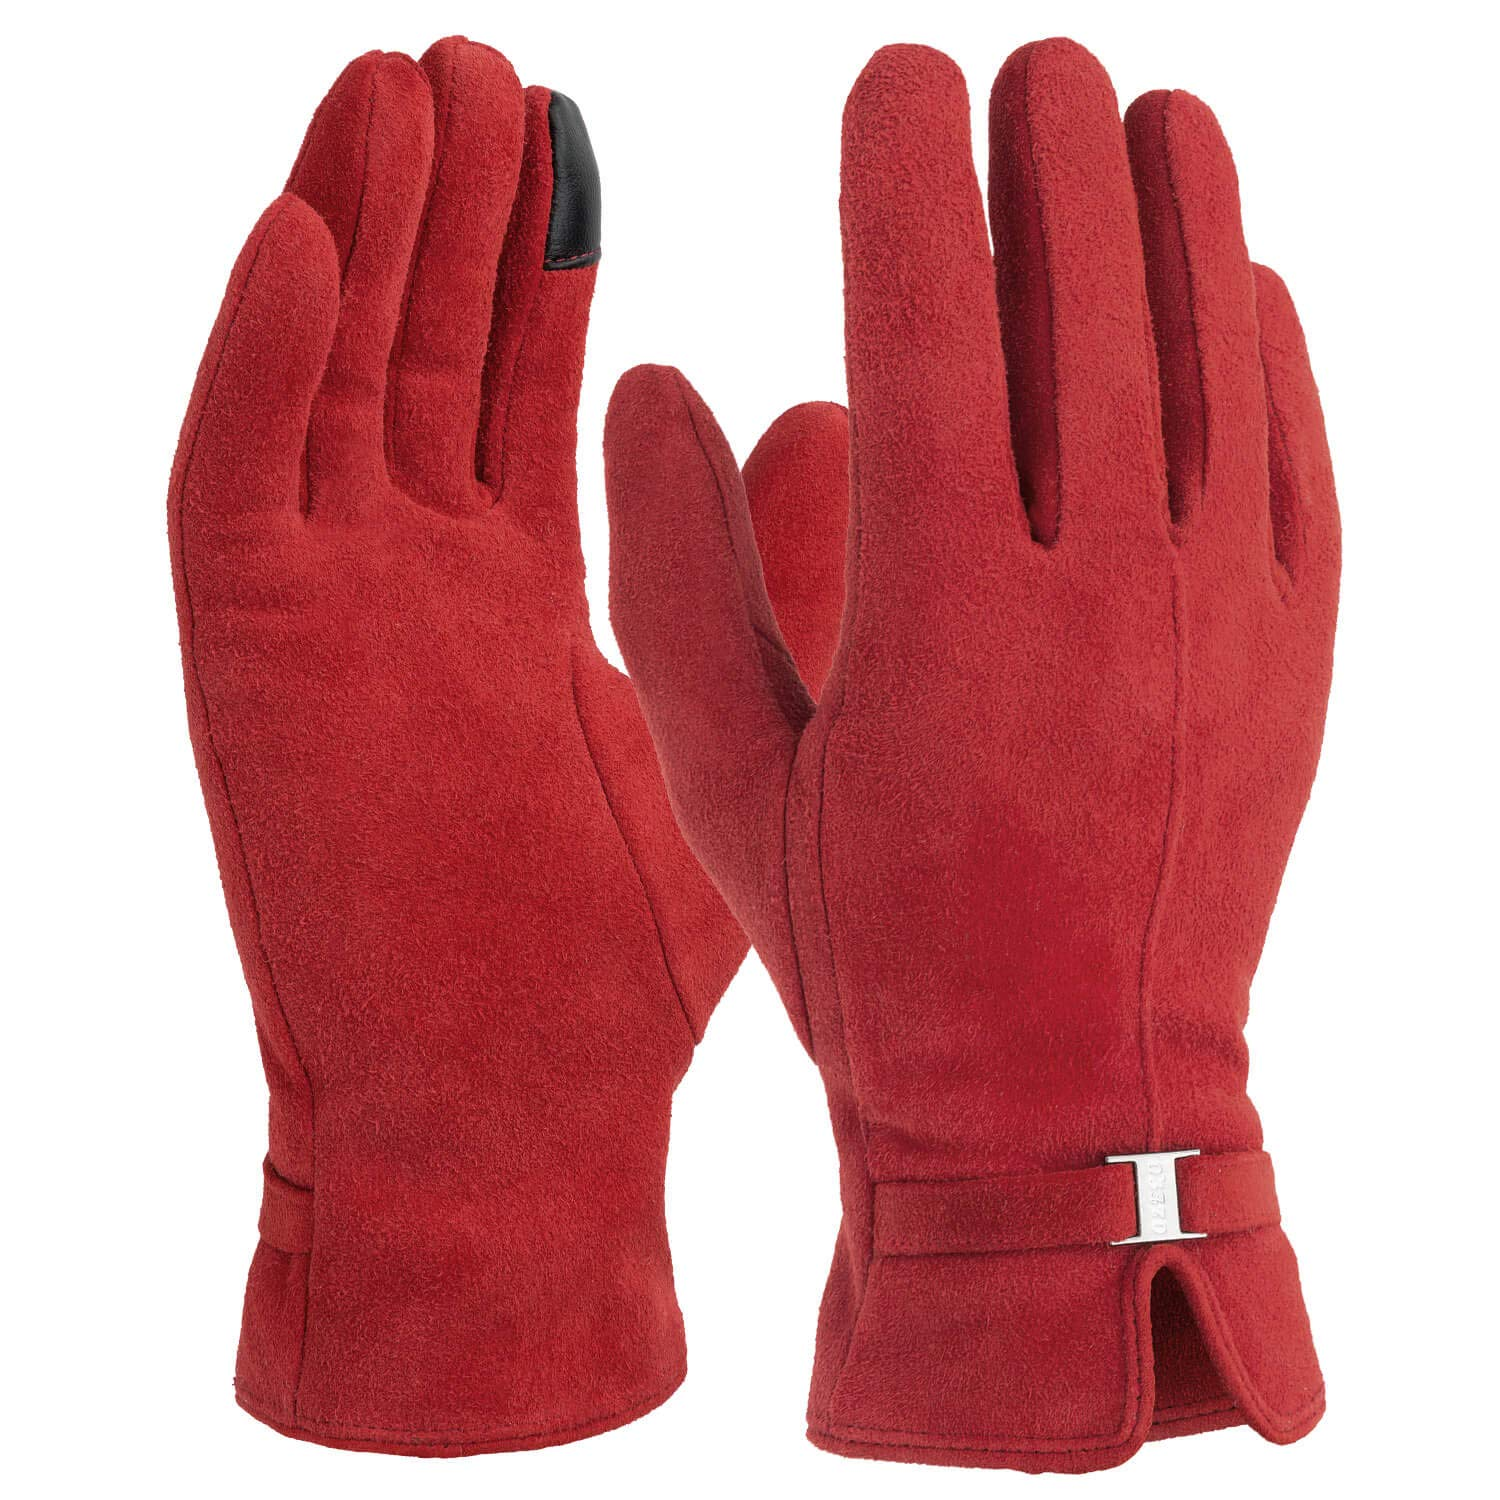 OZERO Womens Winter Gloves Keep Hand Warm in Cold Weather Touch Screen Warm Glove